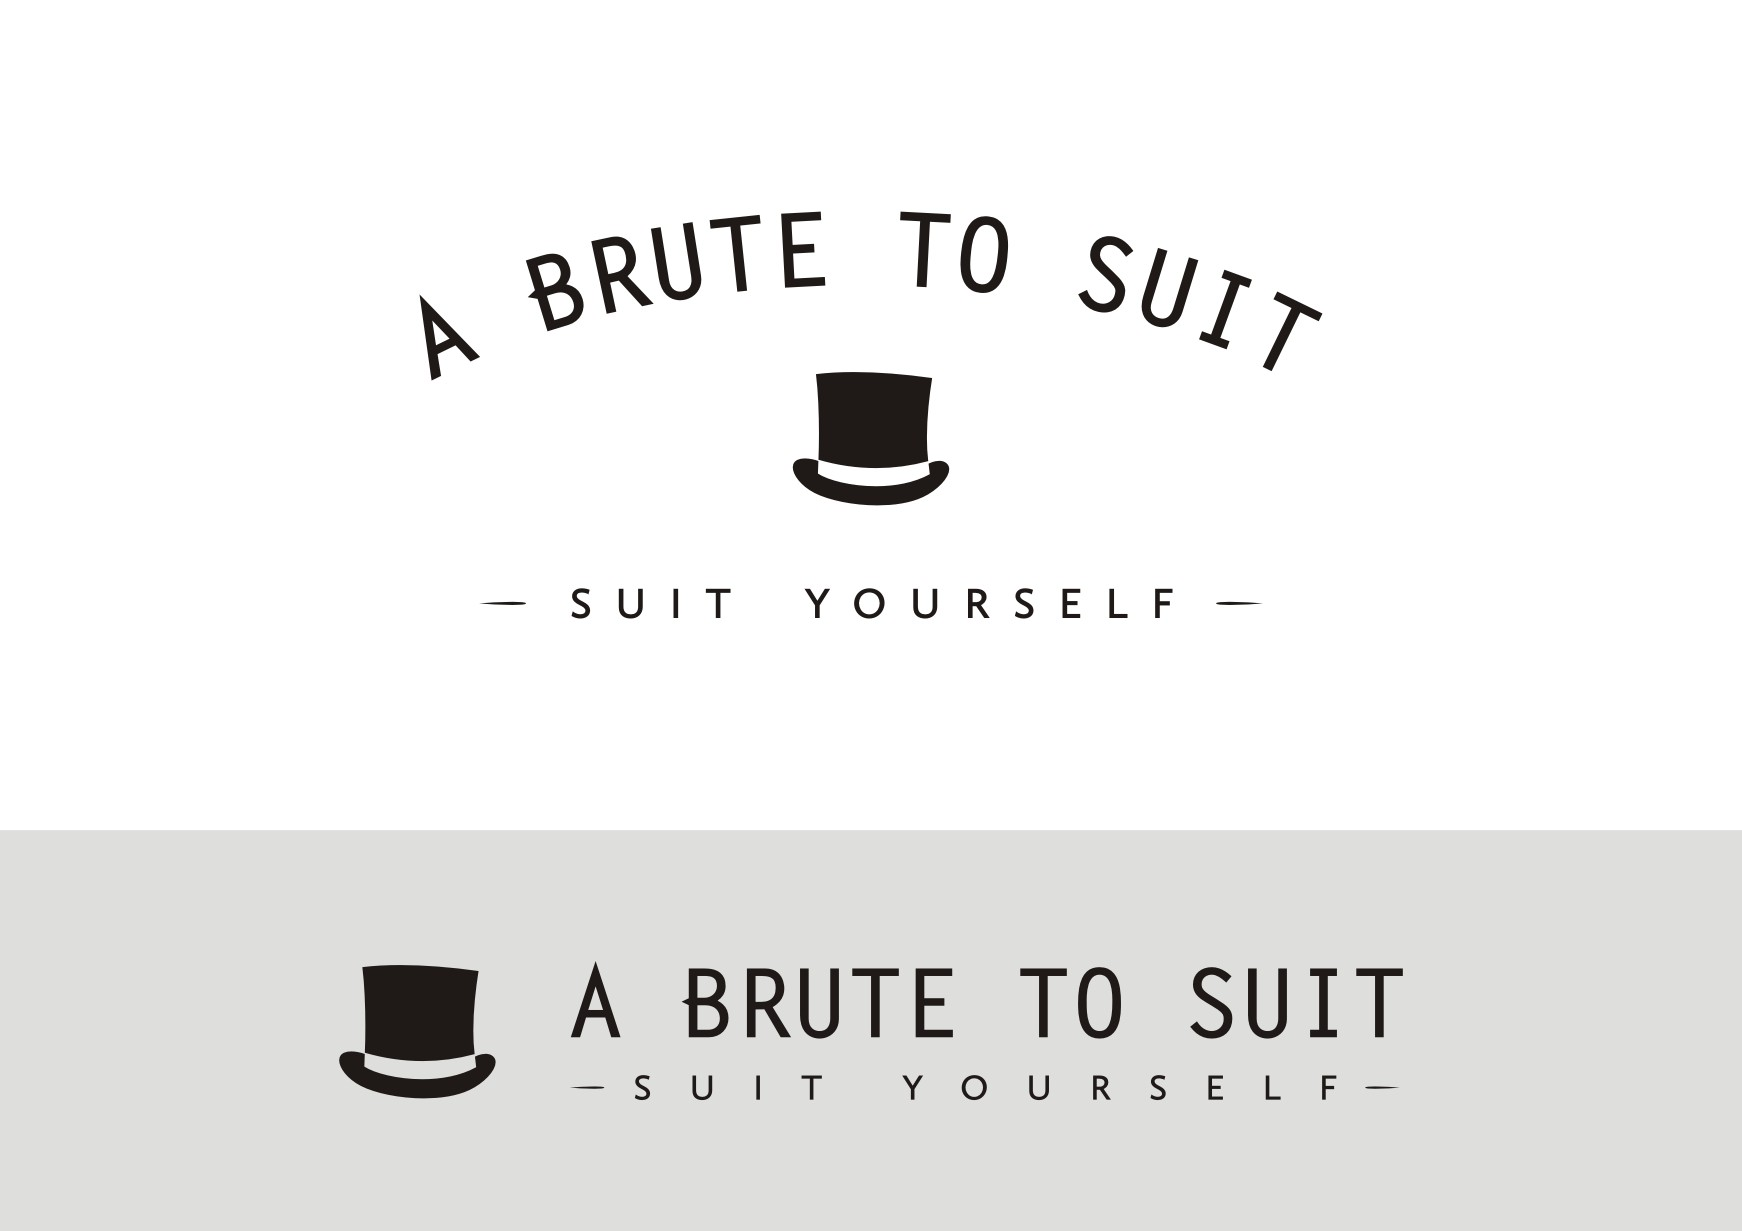 A Brute To Suit needs a new logo